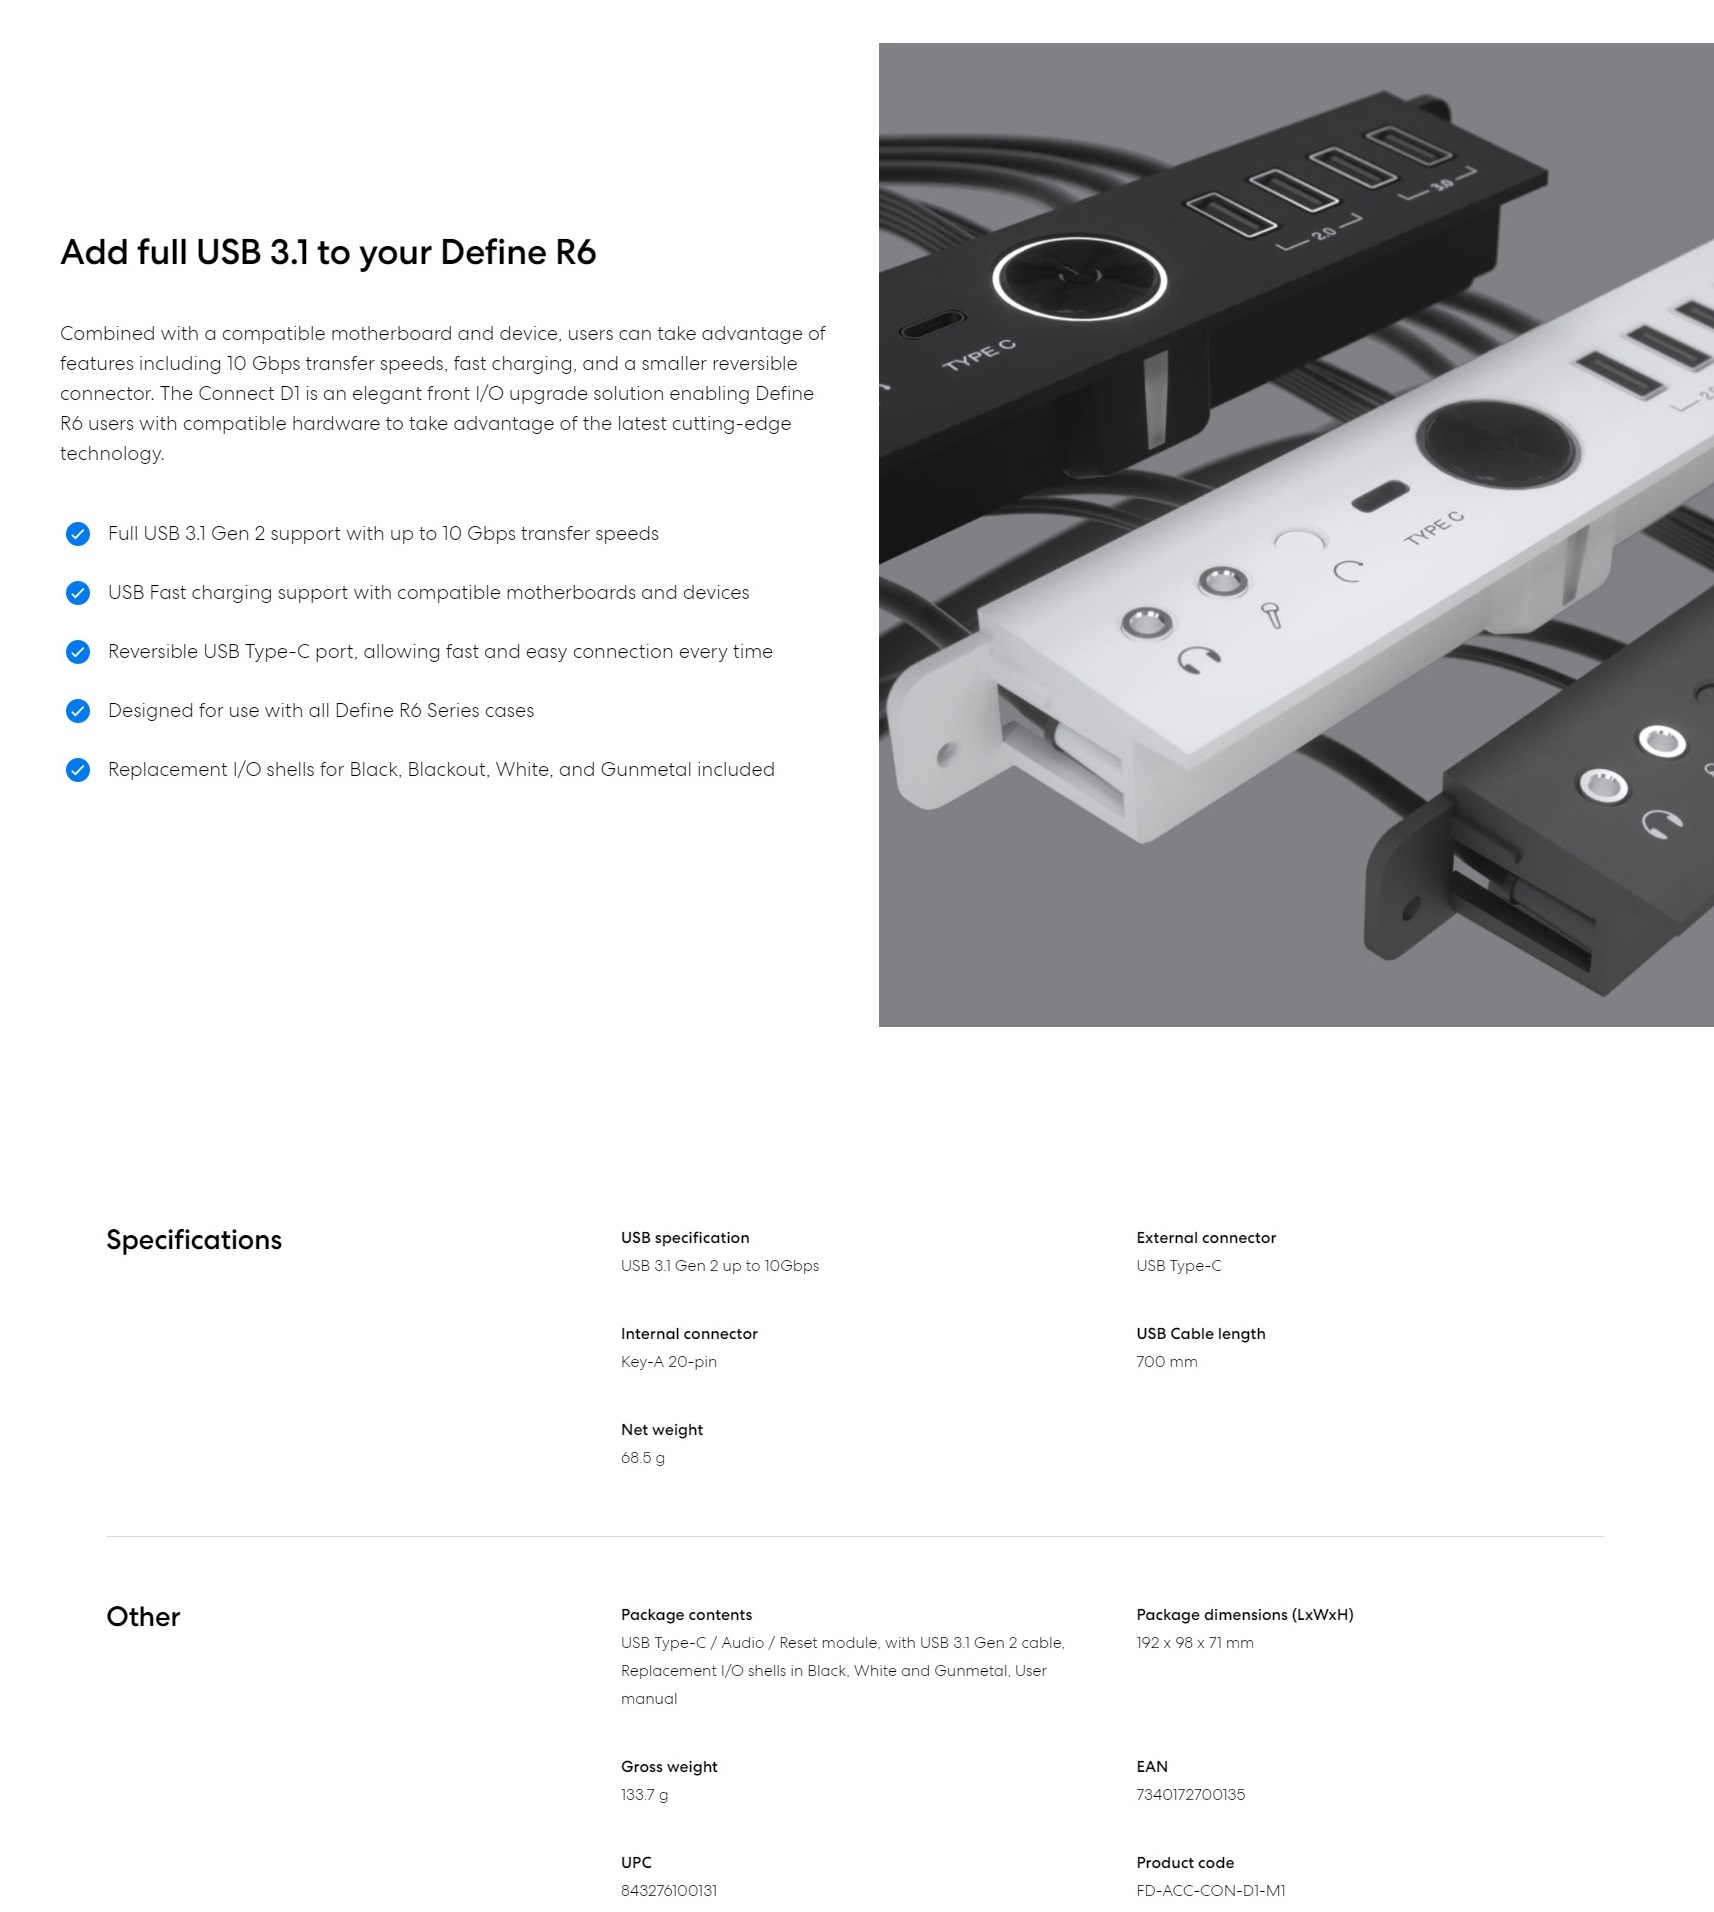 A large marketing image providing additional information about the product Fractal Design Connect D1 USB3.1. Gen 2 up to 10 Gbps - Additional alt info not provided